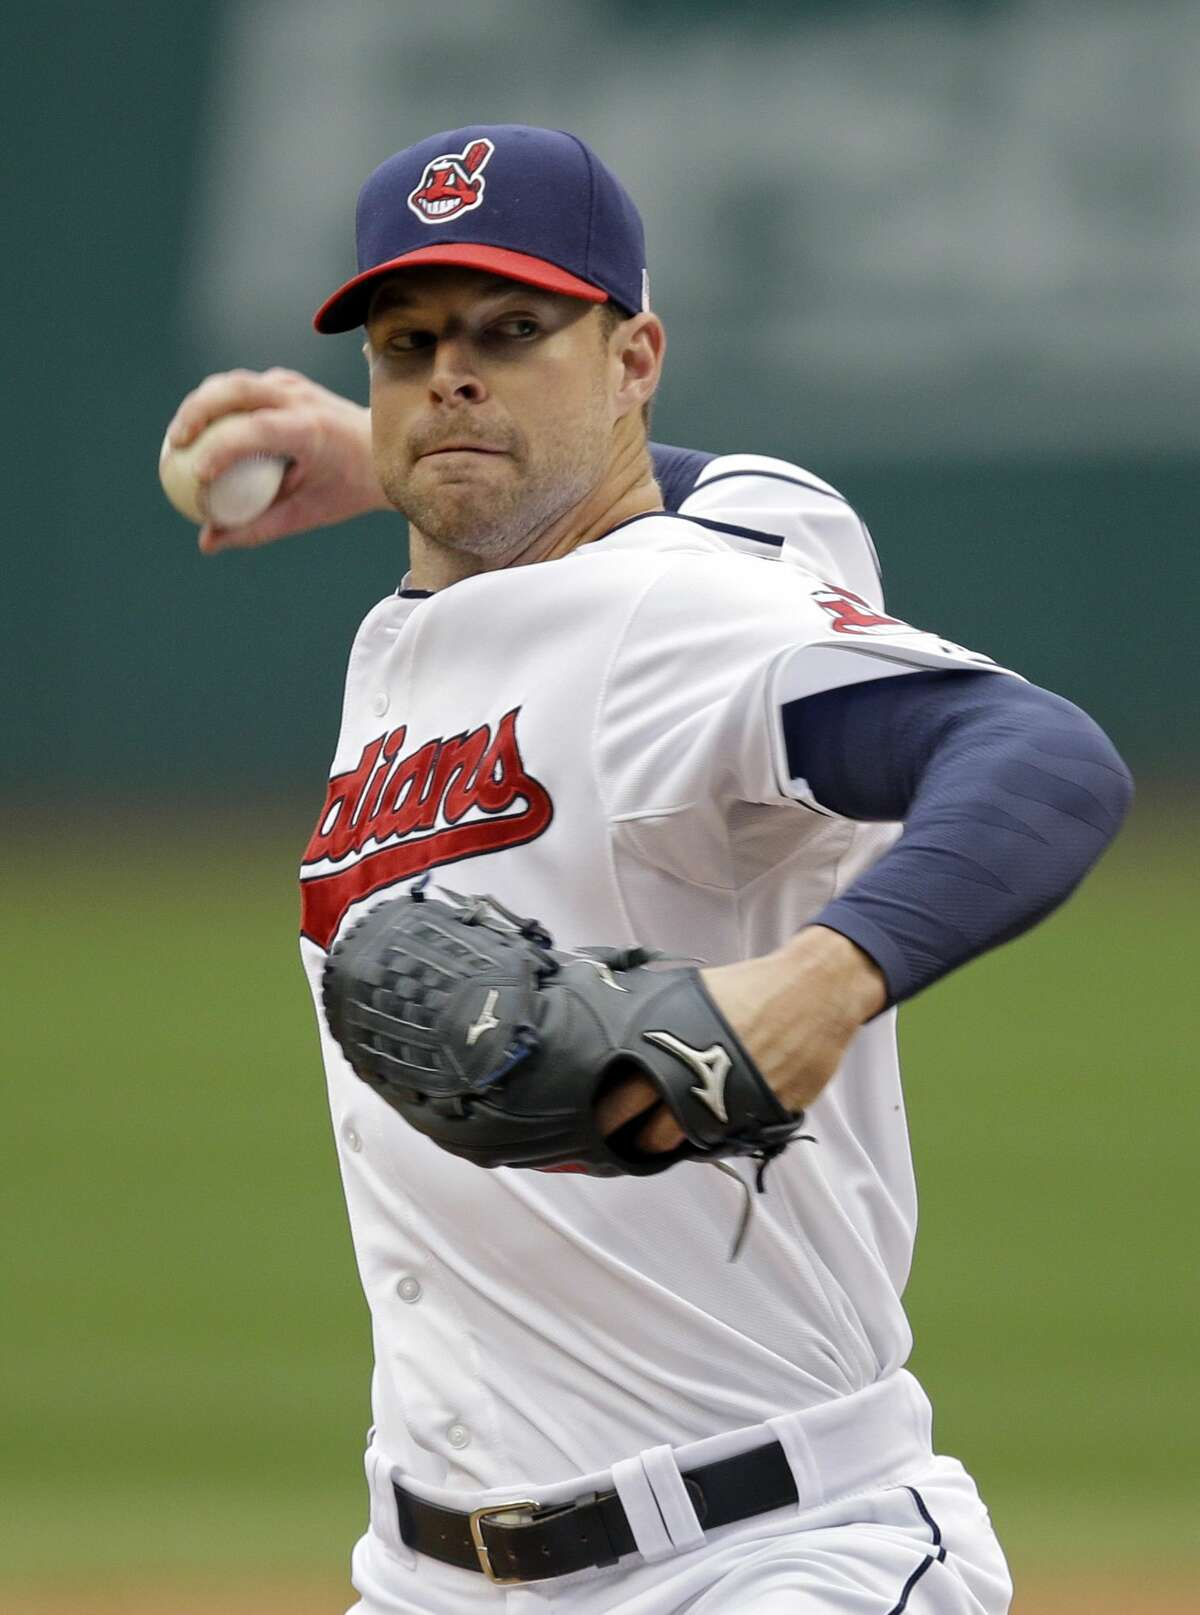 Trading for newly crowned American League Cy Young Award winner Corey Kluber is just one of the fine personnel moves Orange's Chris Antonetti has made as general manager of the Cleveland Indians.